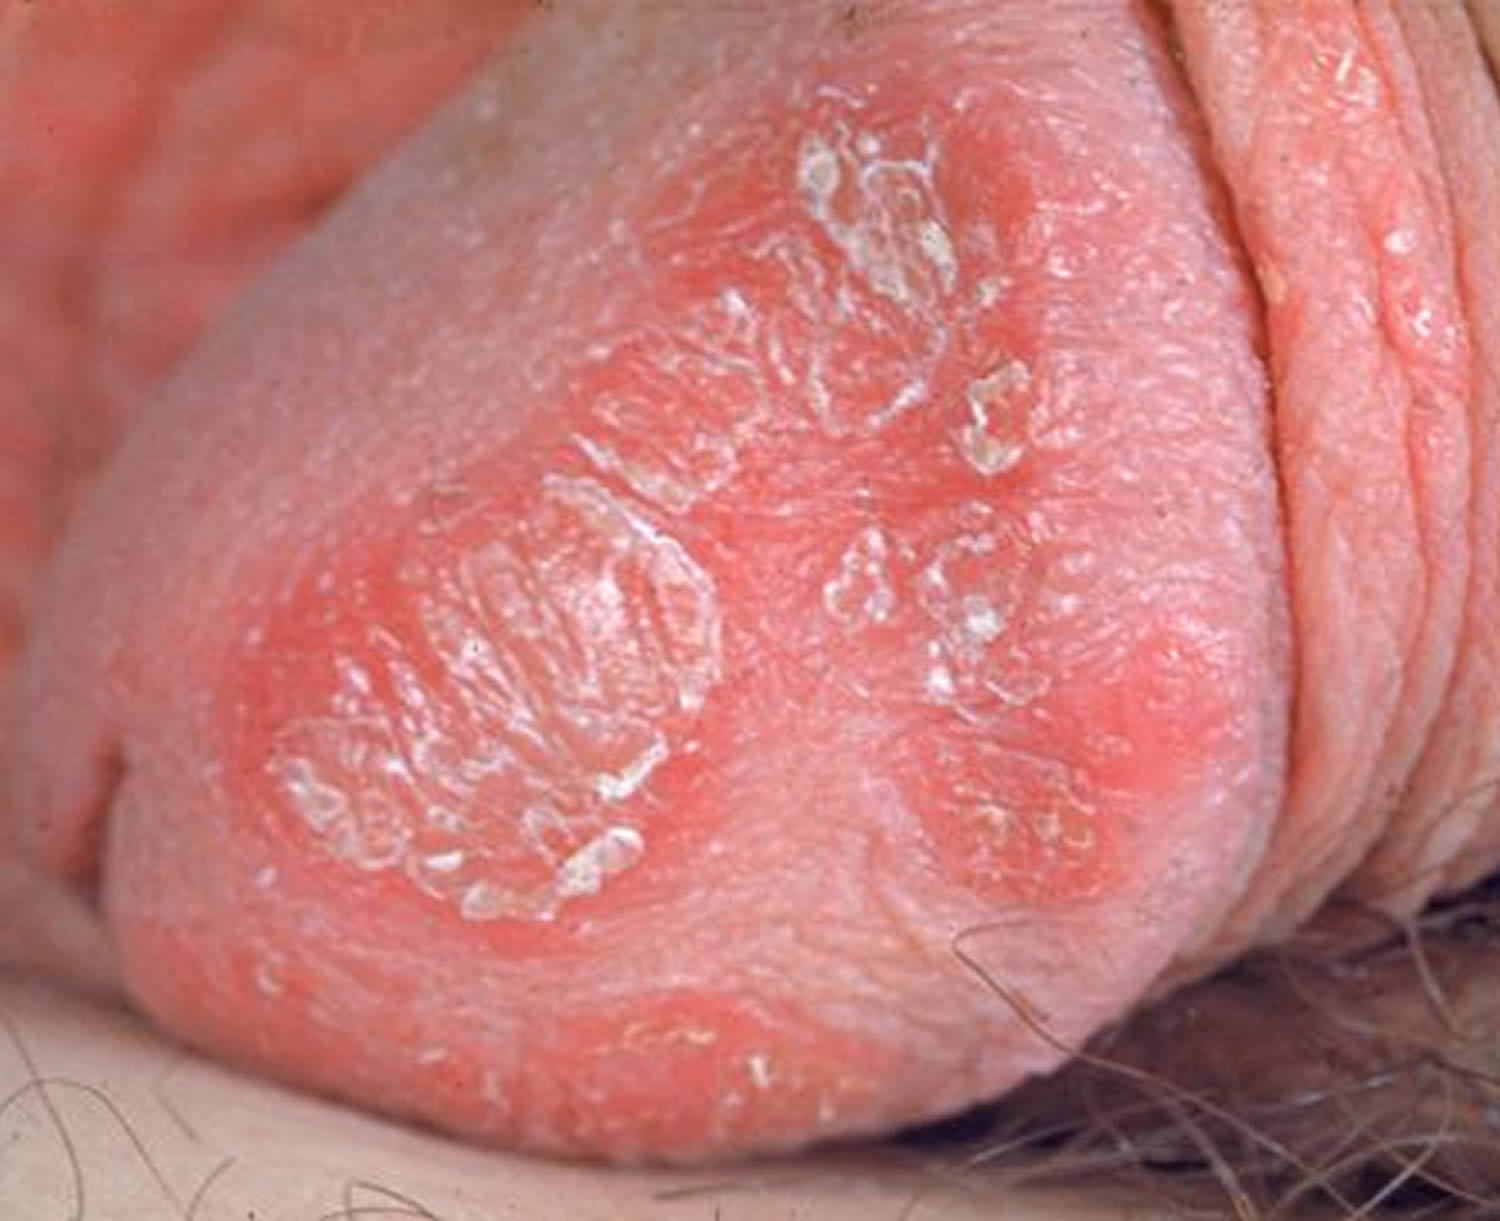 Nsfw psoriasis of the penis